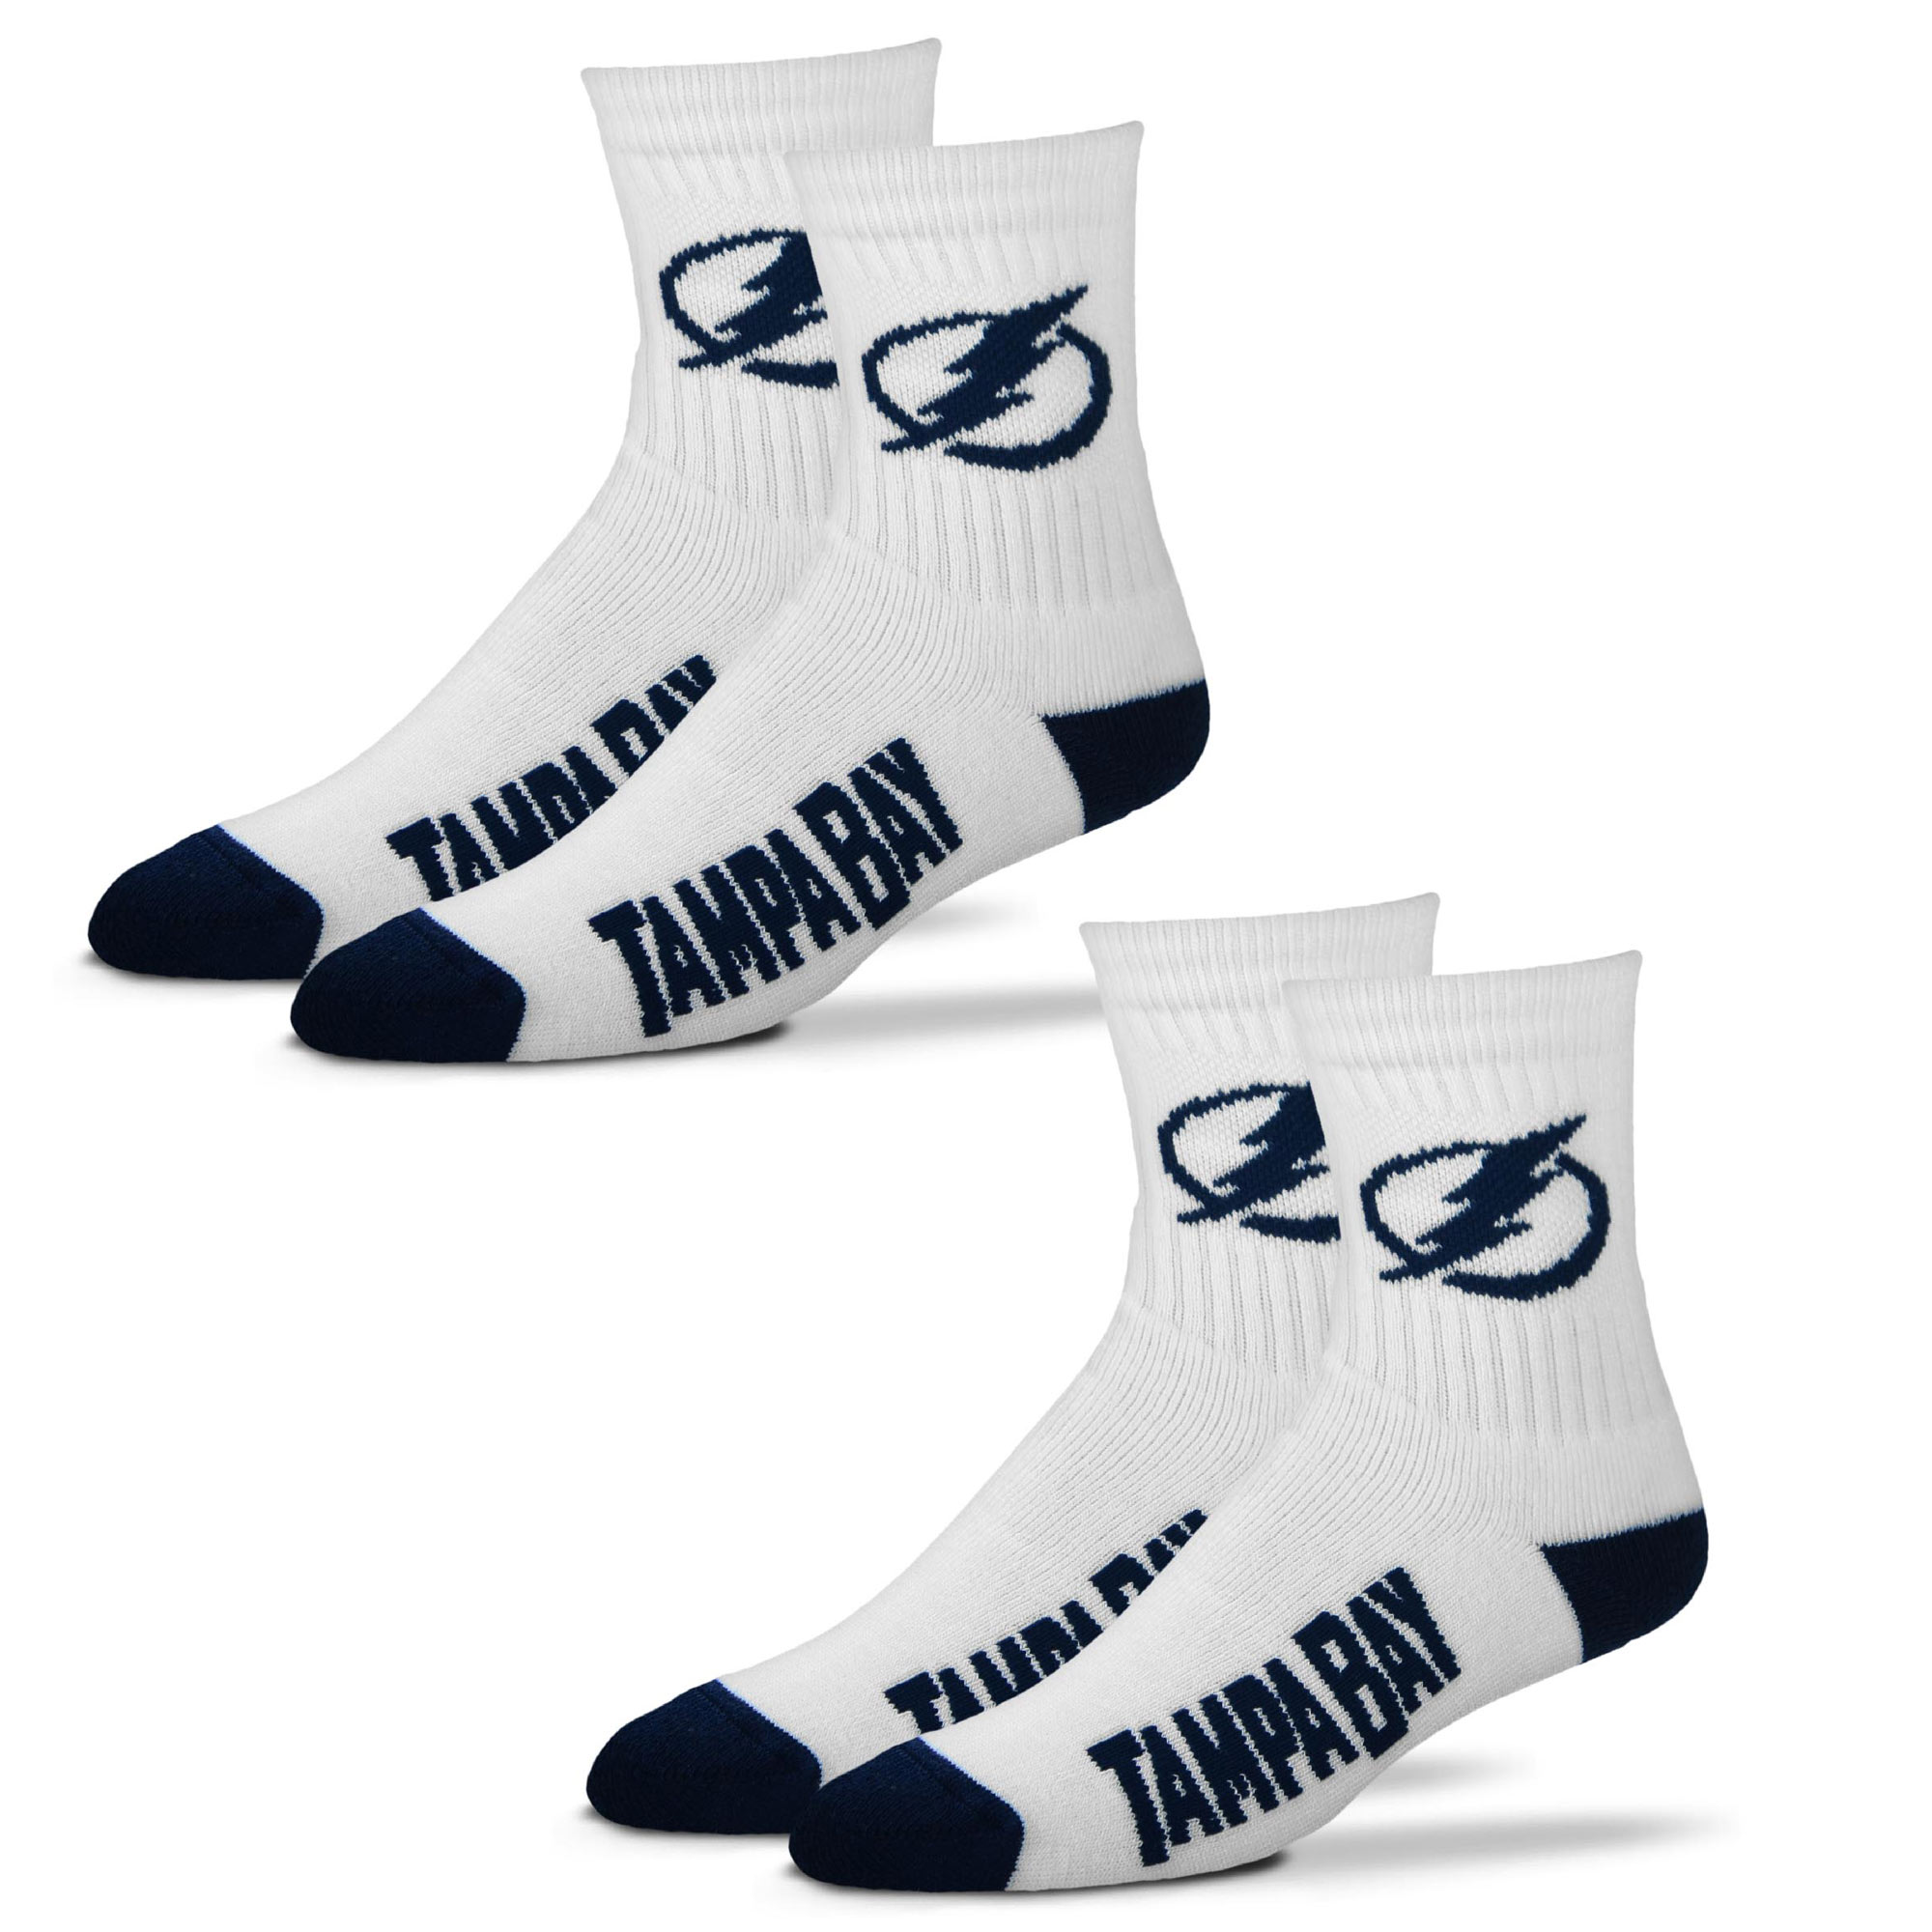 Tampa Bay Lightning For Bare Feet Women's 2-Pack Quarter-Length Socks - M